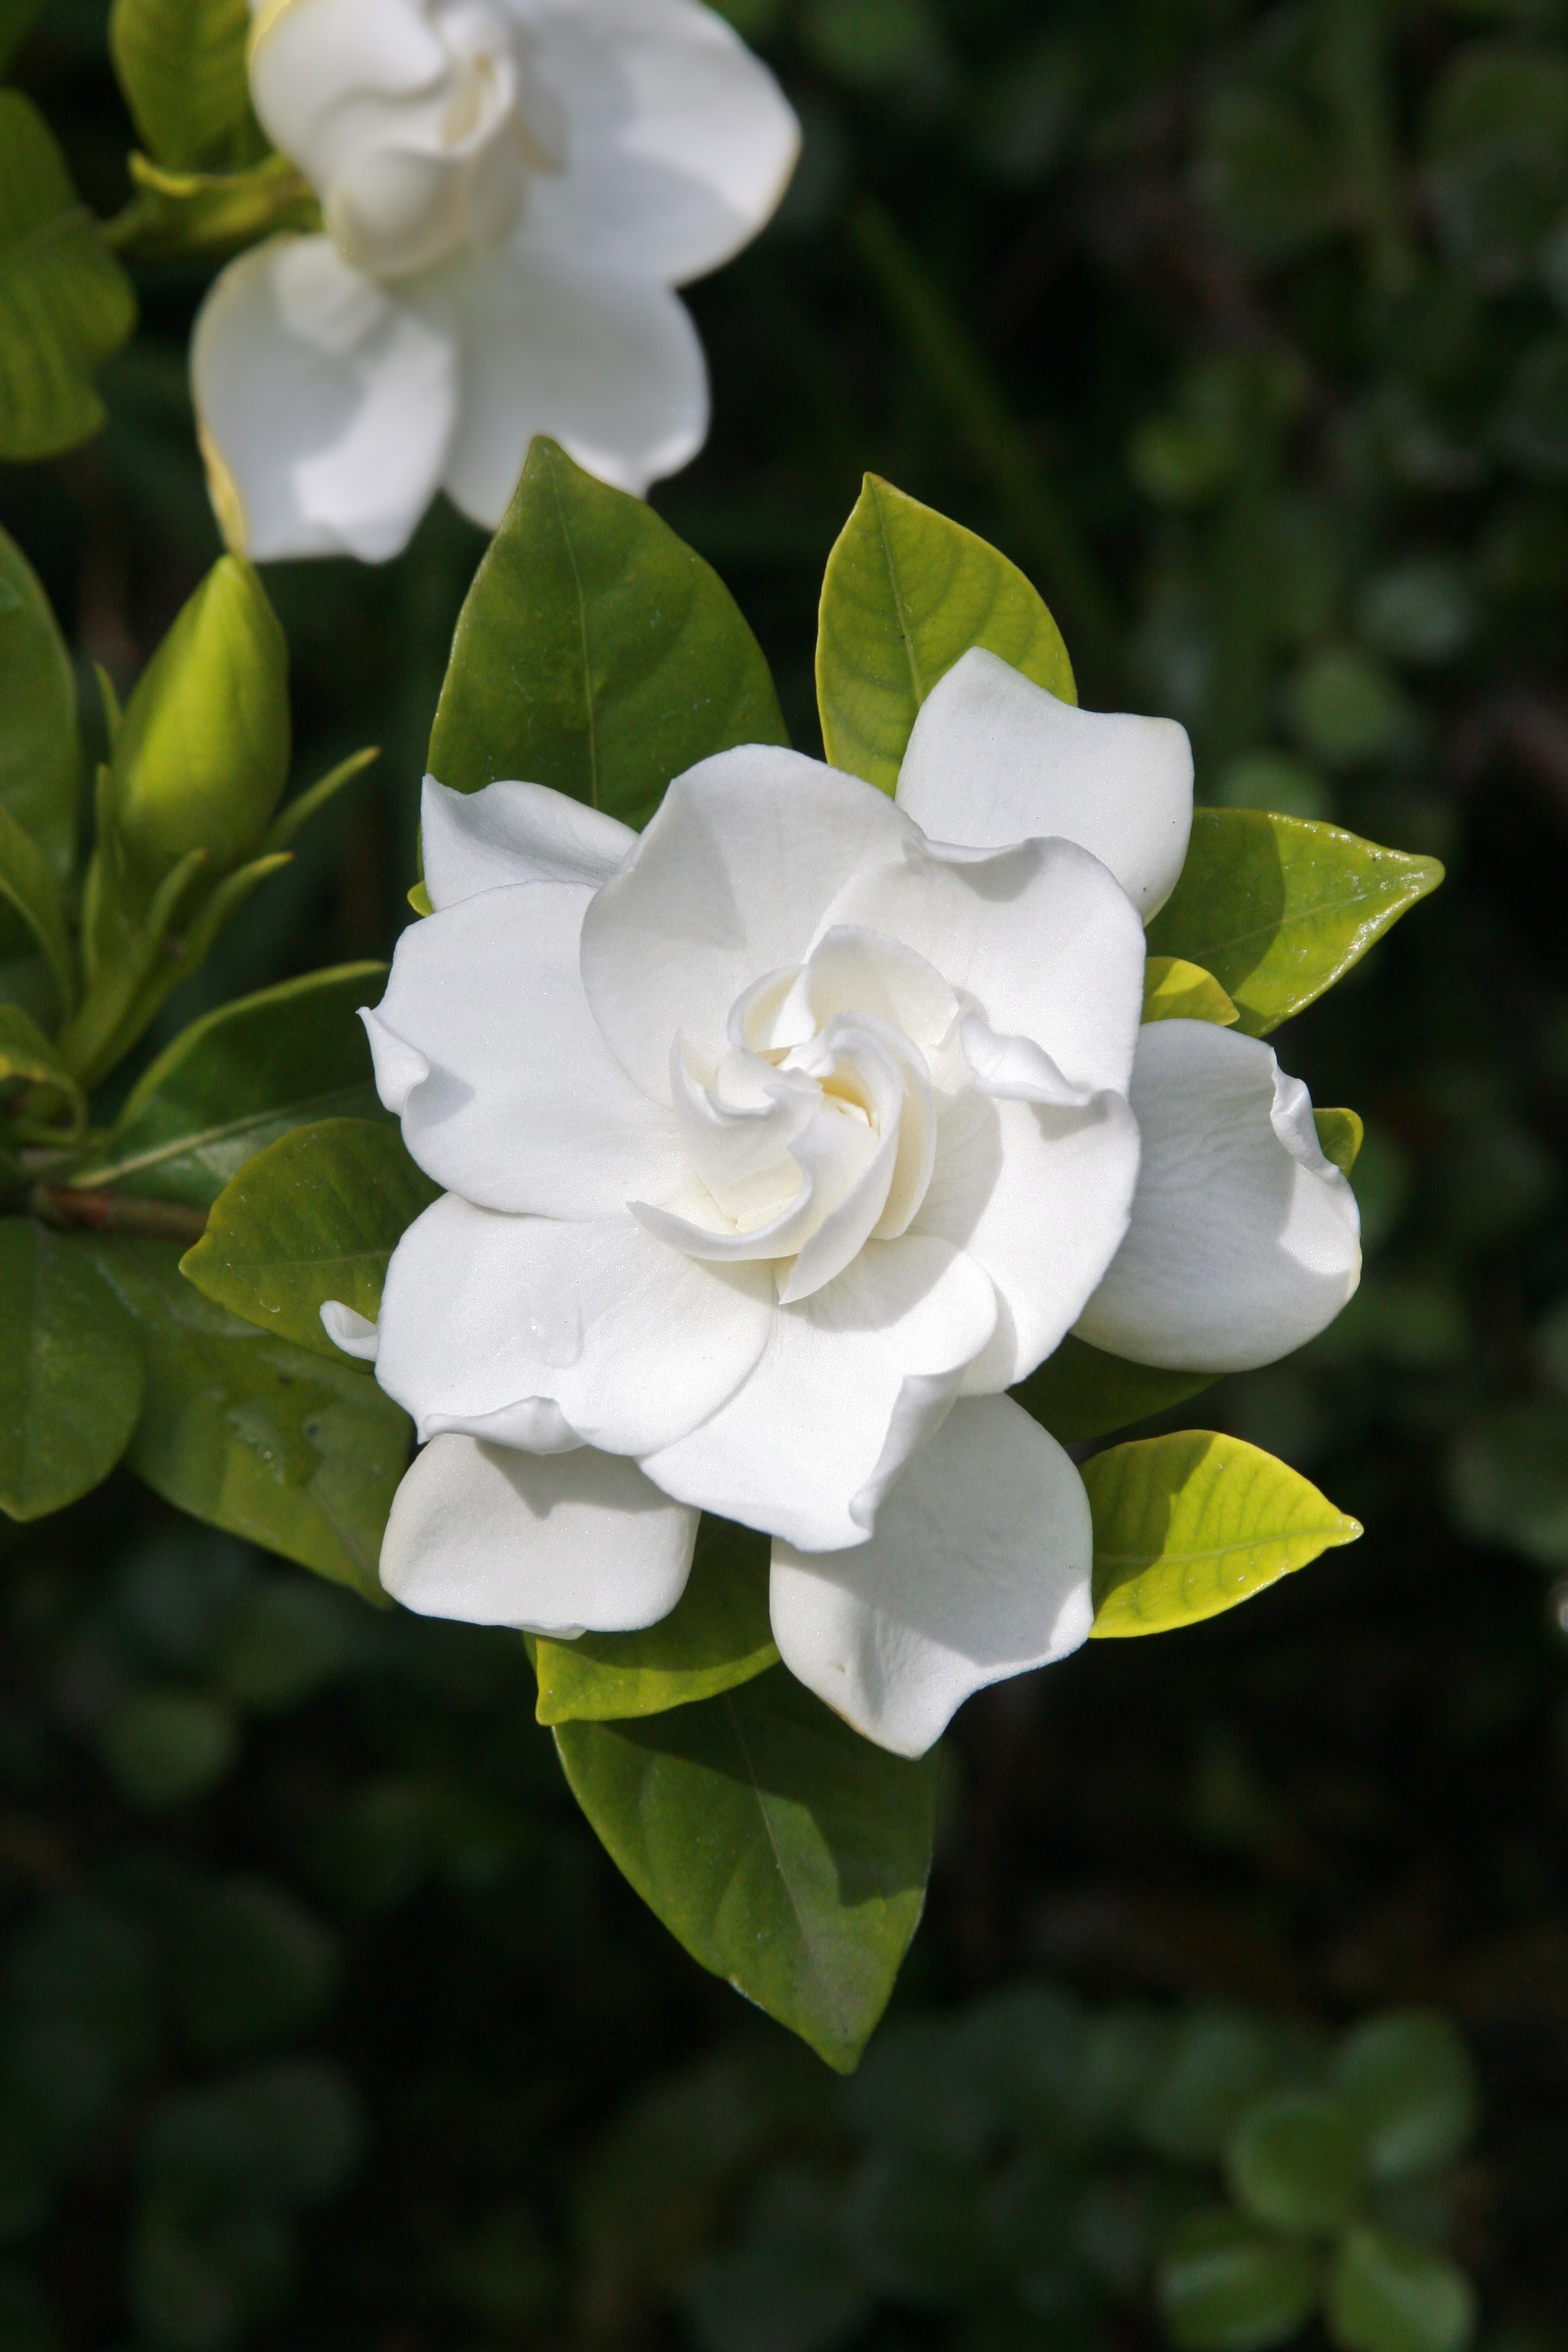 Pruning Gardenias Tips For When And How To Prune A Gardenia